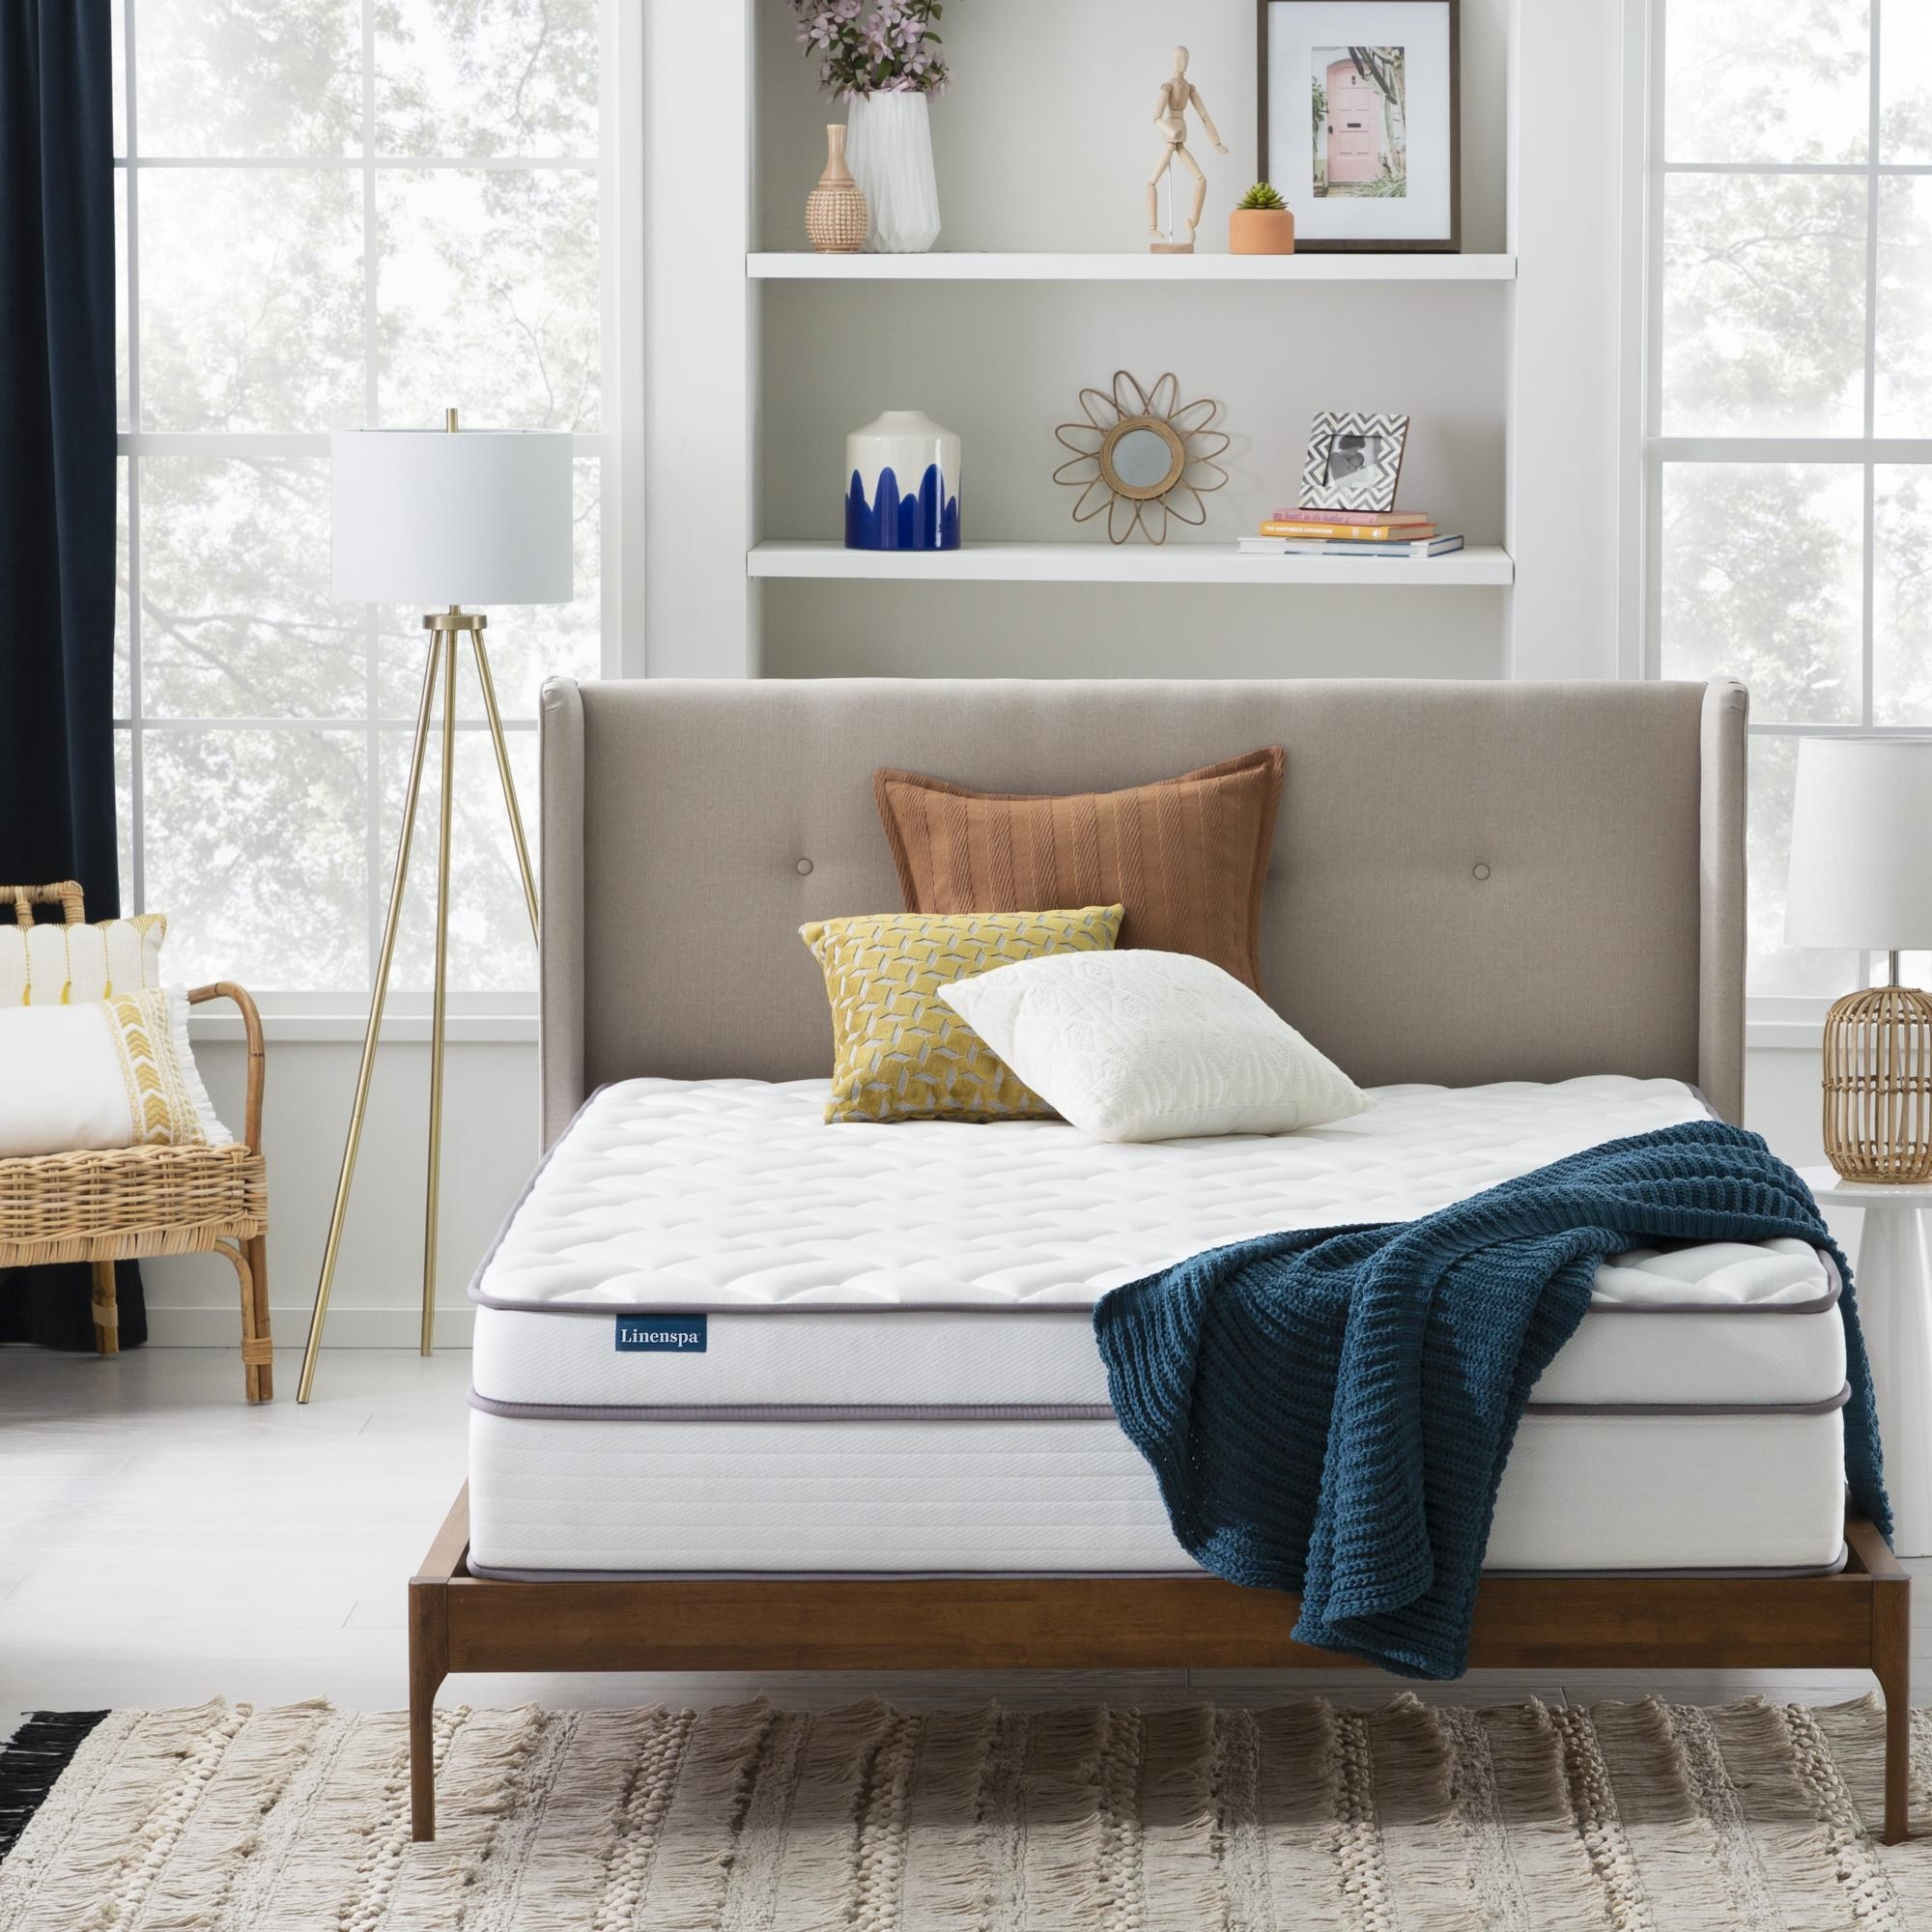 The mattress on a bed frame